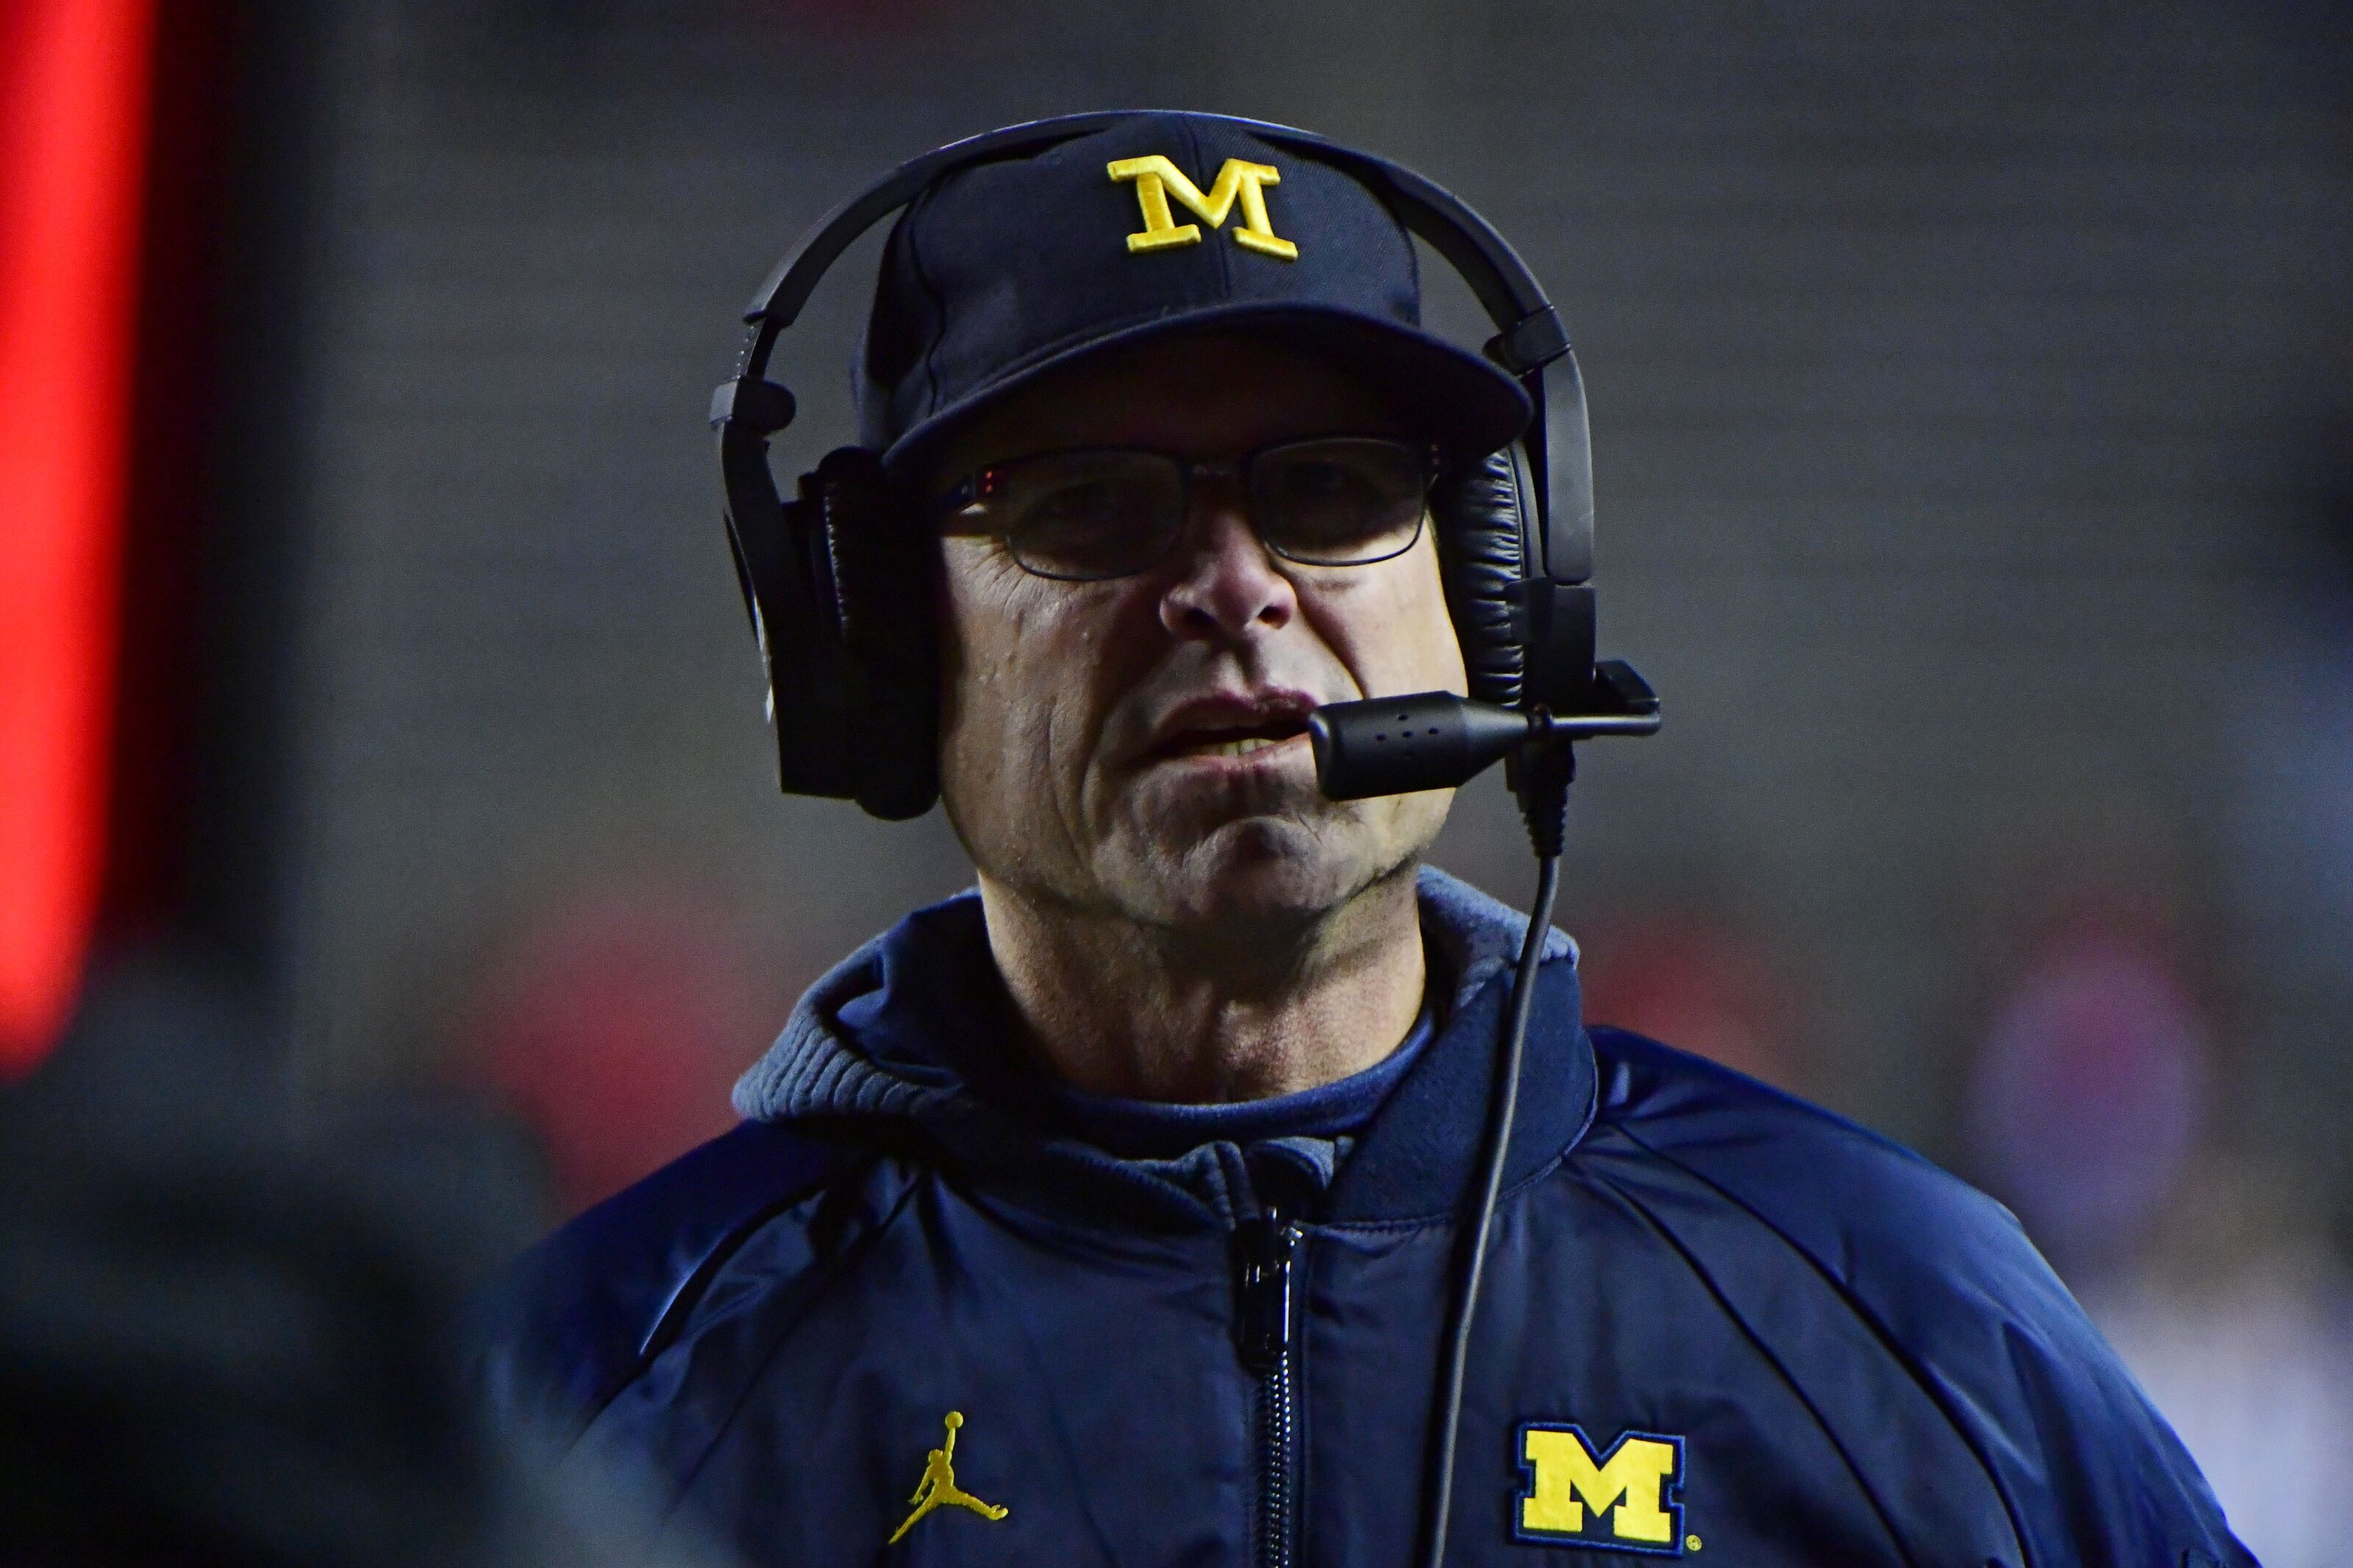 Michigan football: How Jim Harbaugh can win back Wolverines fans